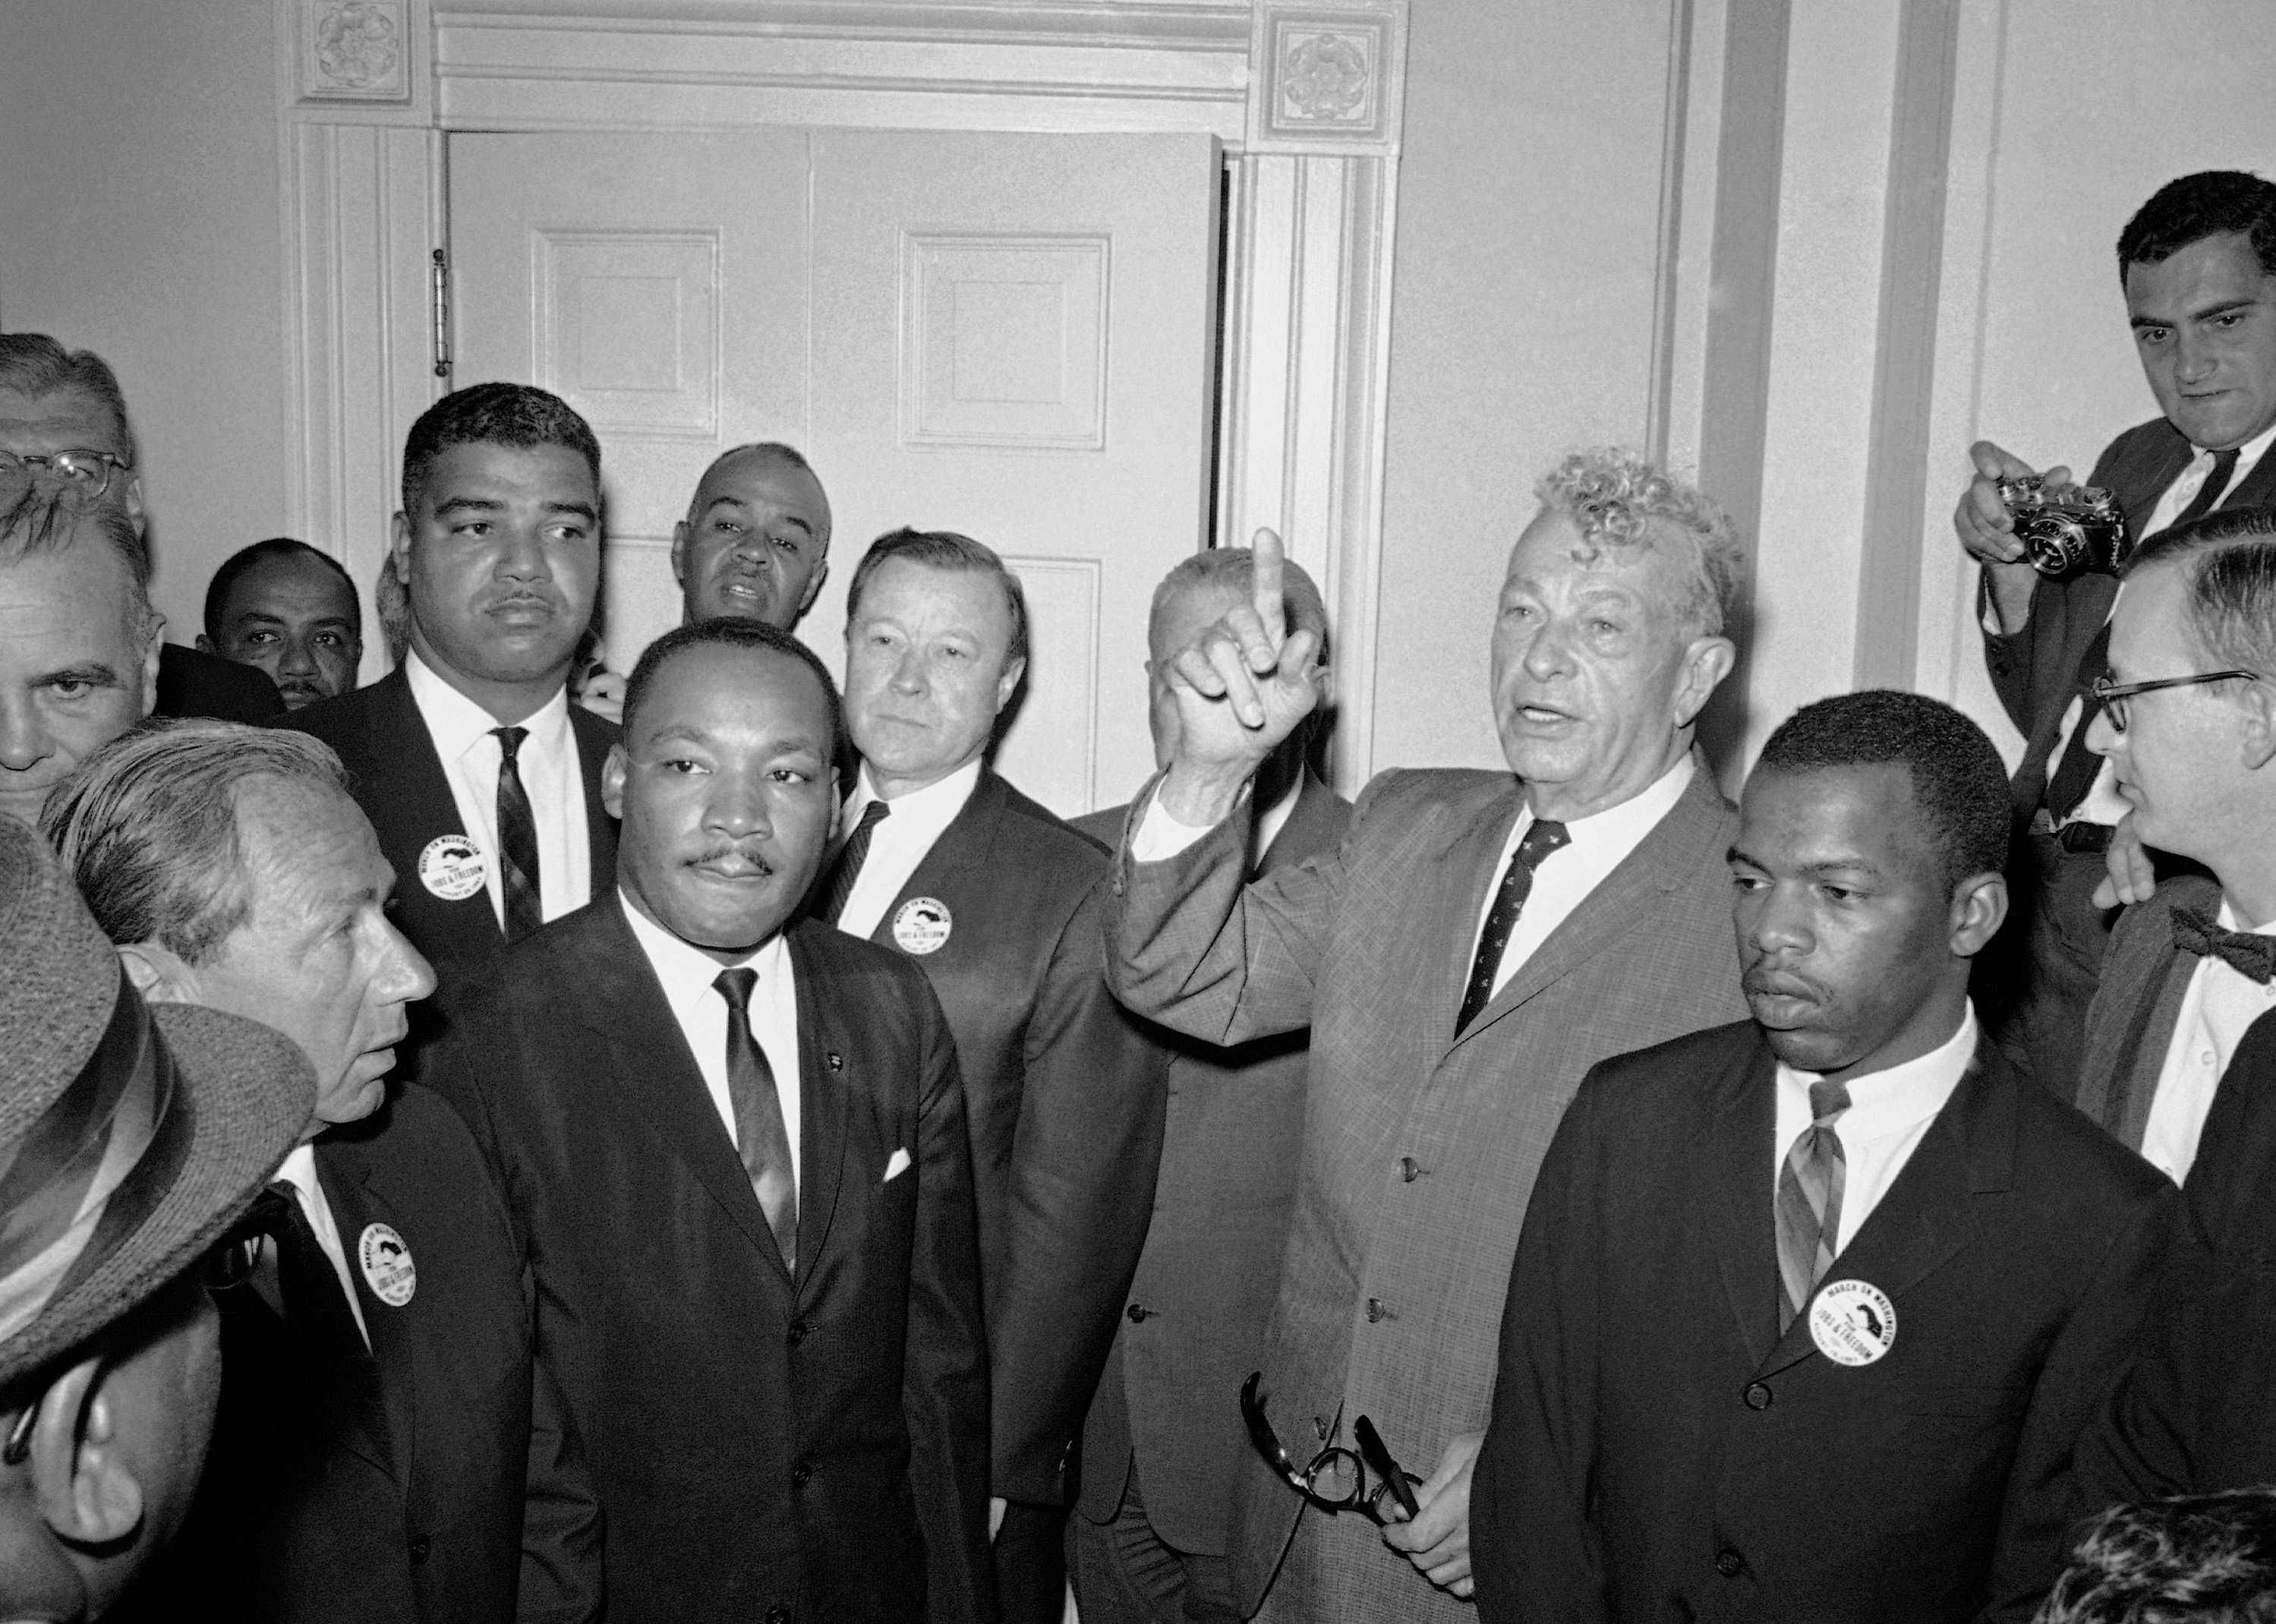 Leaders of the March on Washington stand with Illinois Sen. Everett Dirksen, center right, during a visit to the Capitol on Aug. 28, 1963. From left are Whitney Young, National Urban League; Martin Luther King Jr., Southern Christian Leadership Conference; Roy Wilkins, NAACP, behind King; Walter Reuther, United Auto Workers president; Dirksen and John Lewis, Student Non Violent Coordinating Committee.